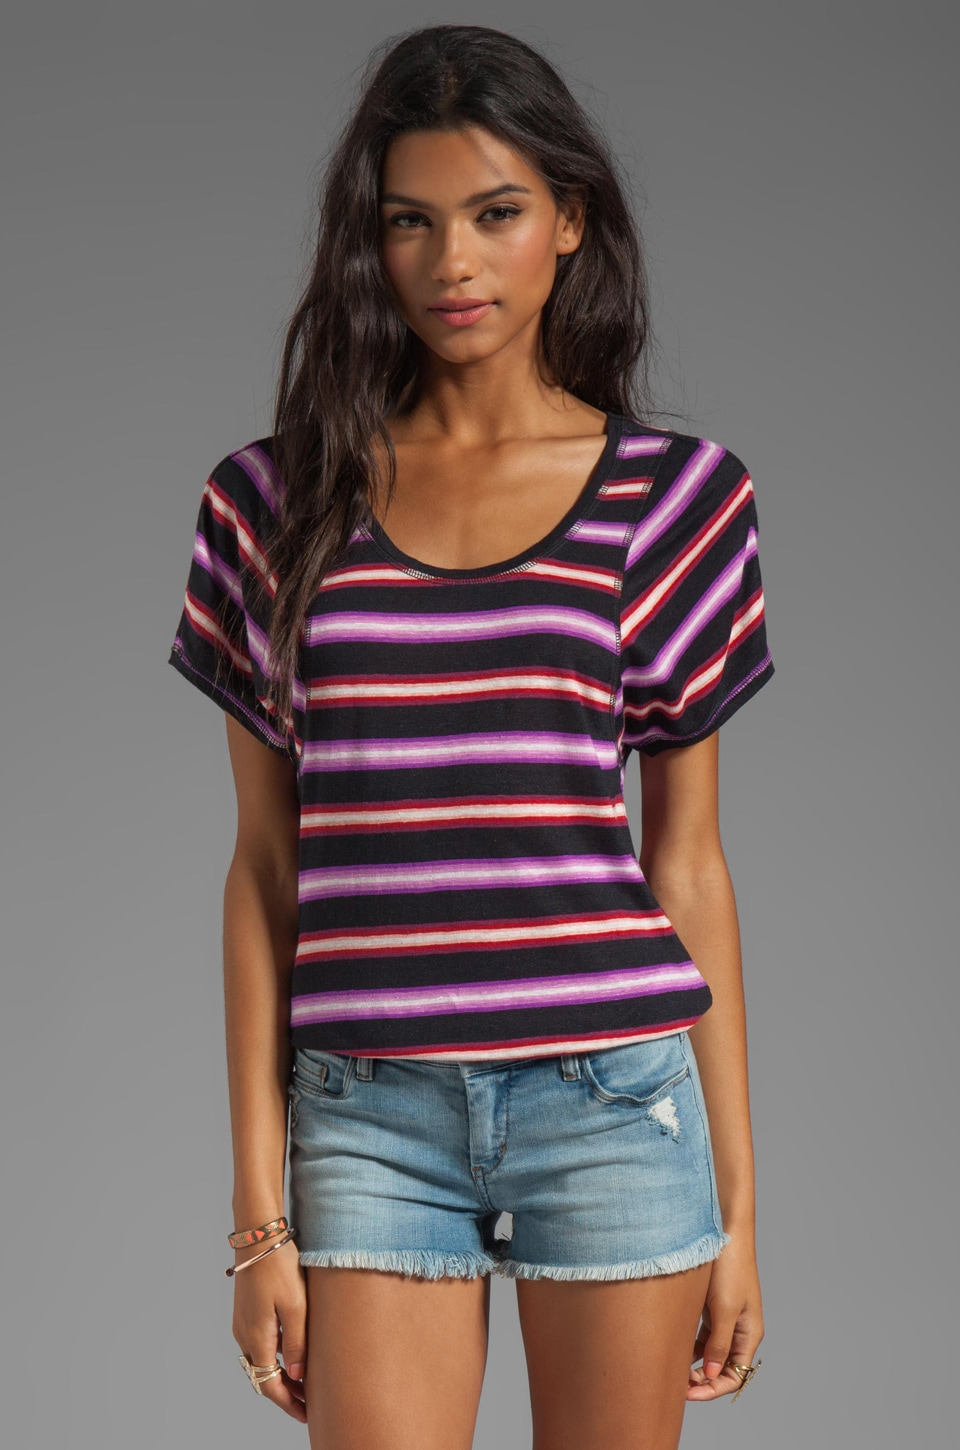 Marc by Marc Jacobs Light Stripe Jersey Short Sleeve Top in General Navy Multi